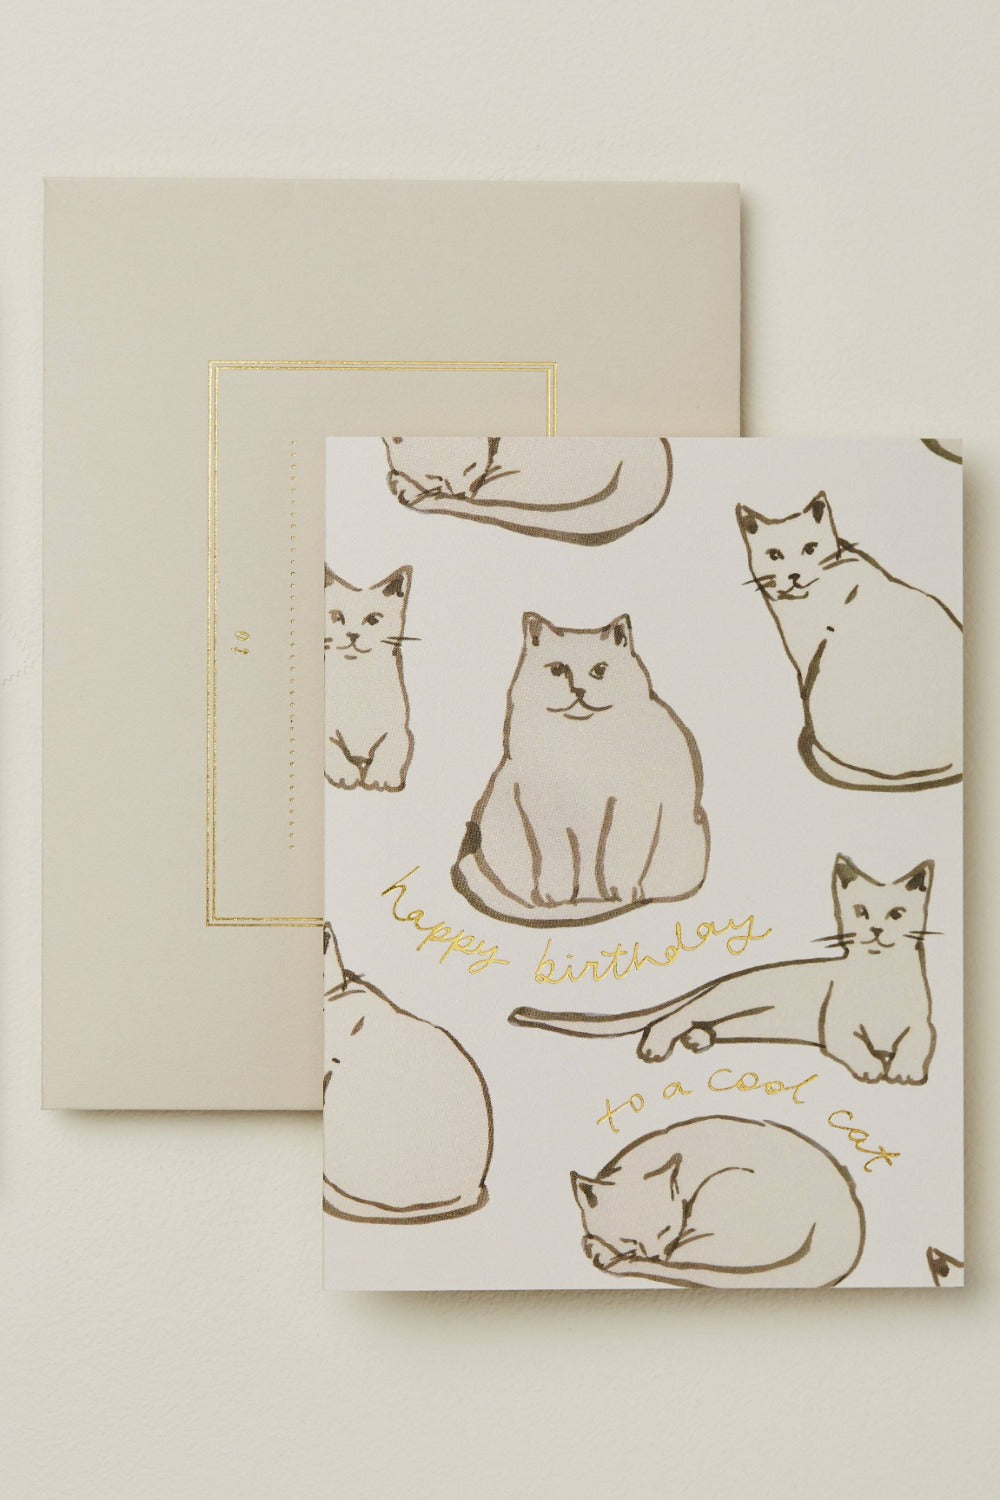 Wanderlust Card - Feline Happy Birthday to a Cool Cat Gifts & Stationery Wanderlust